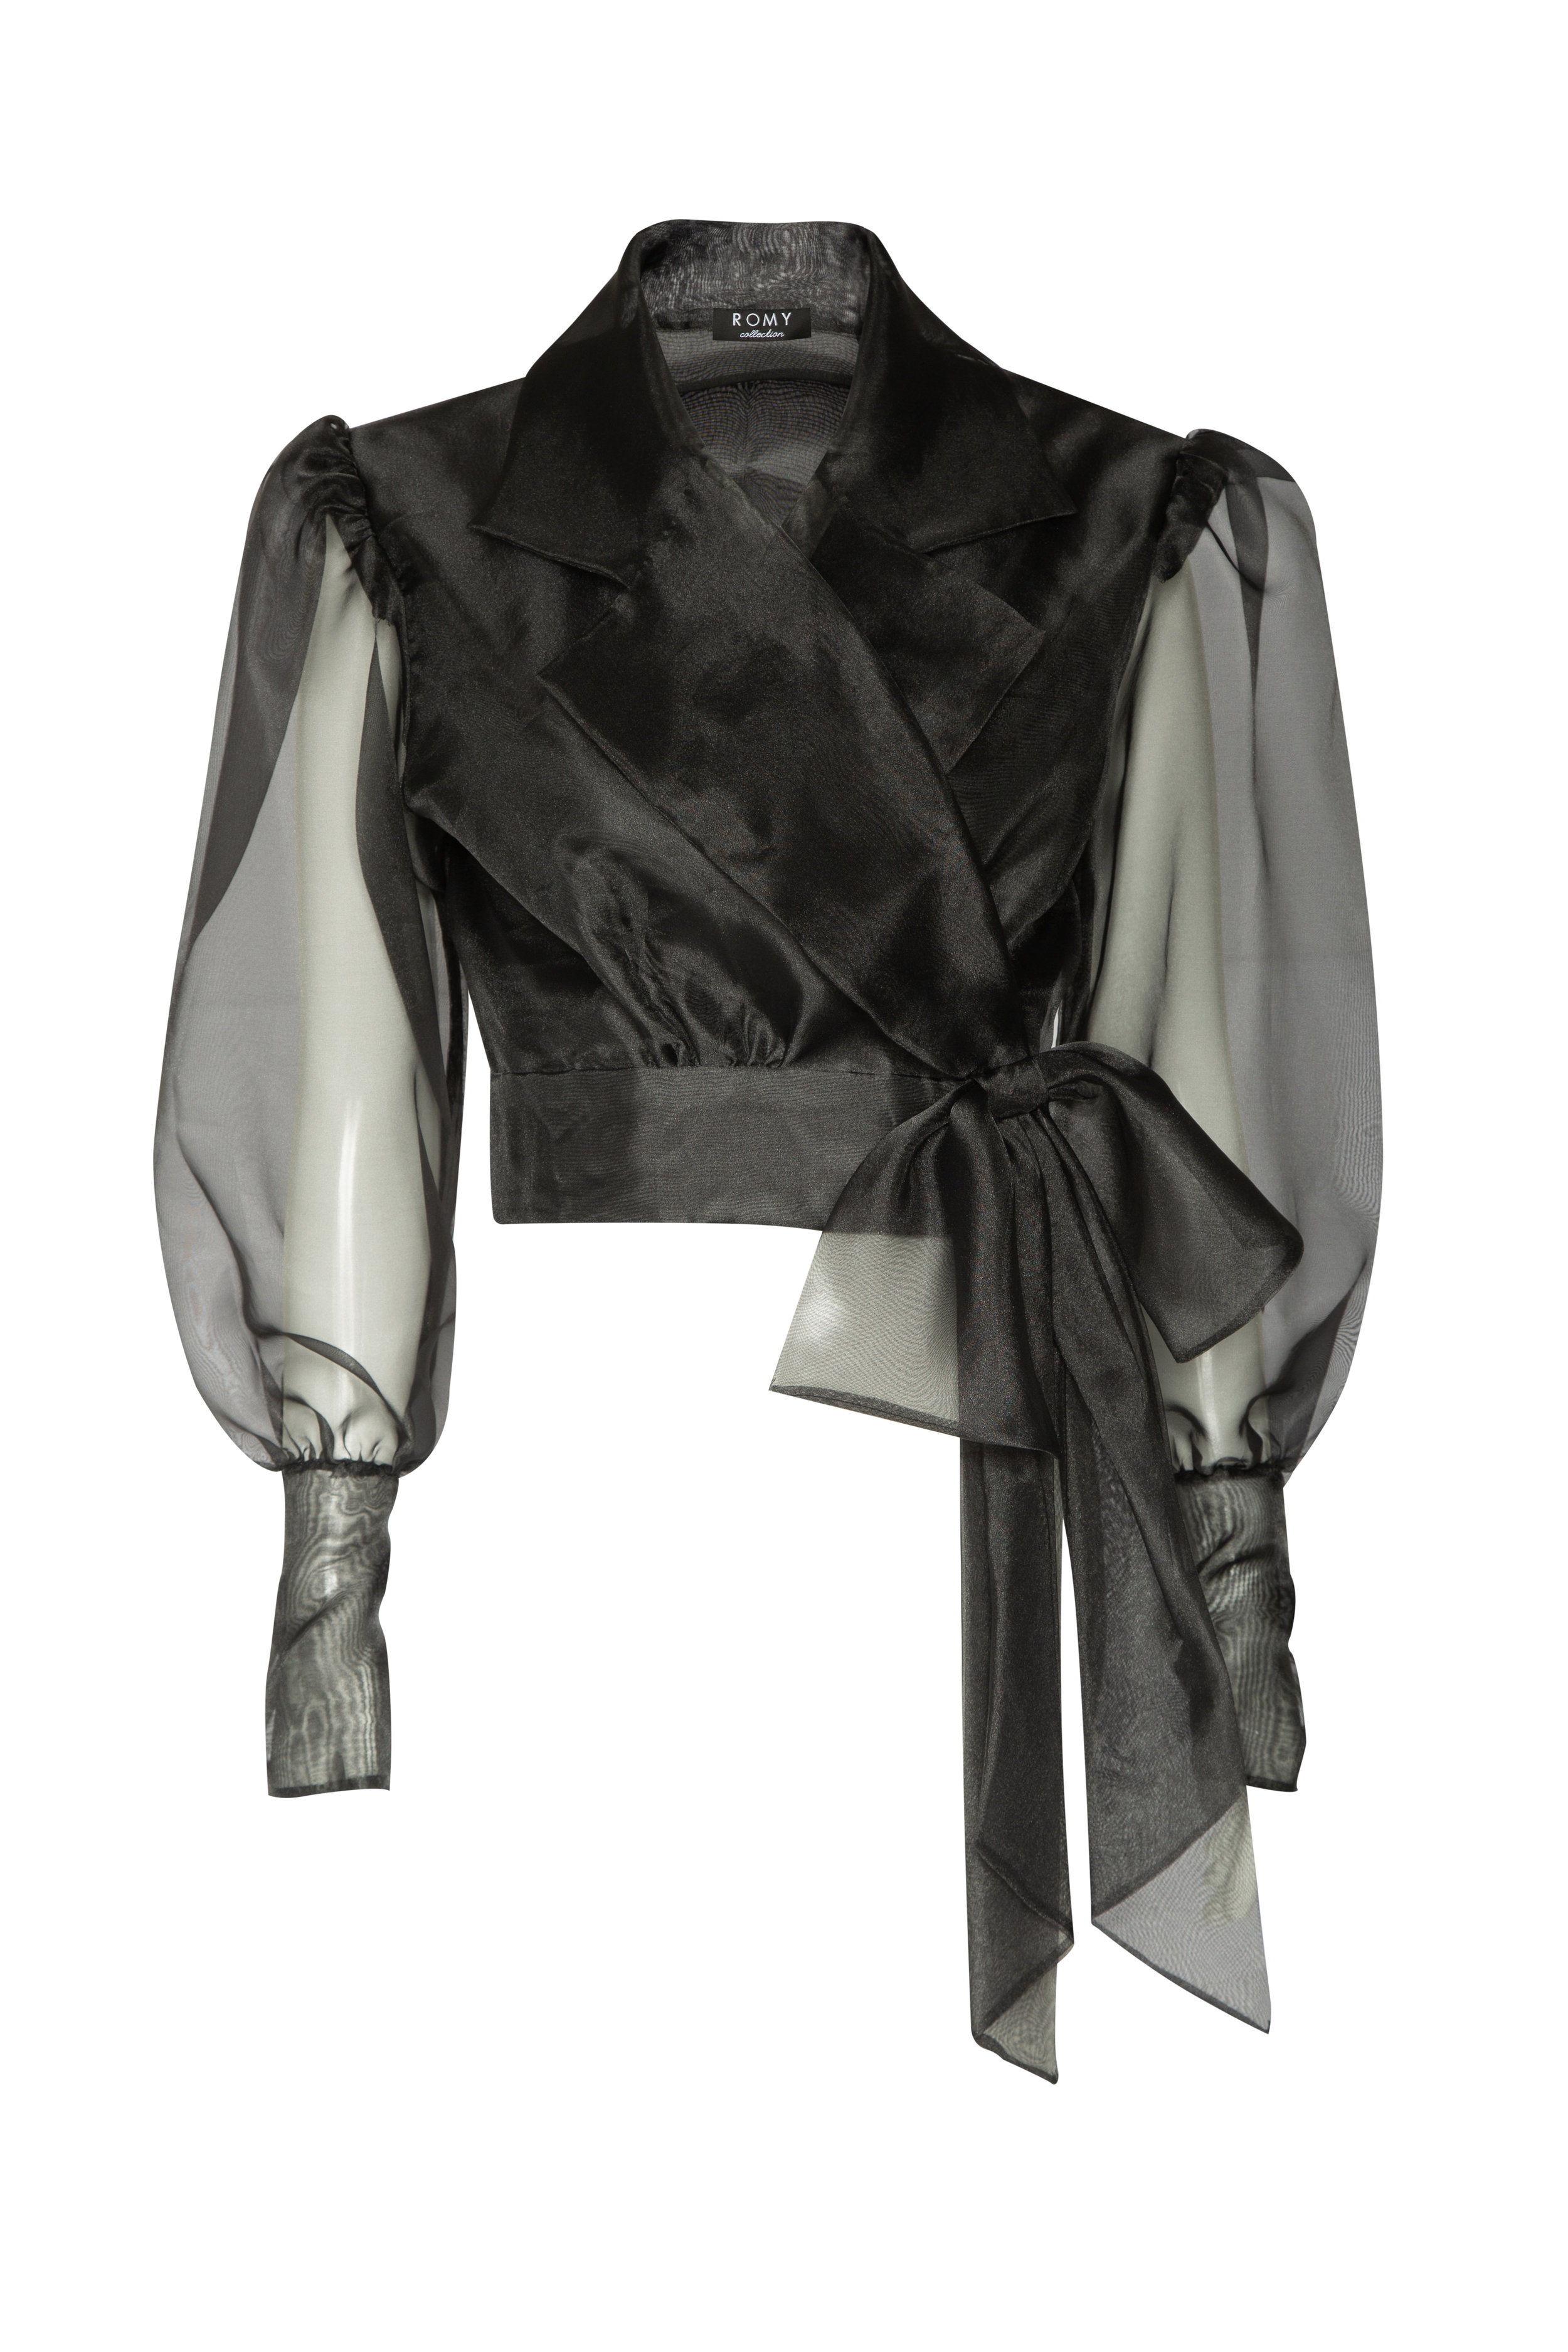 COMPLETE THE LOOK - Marilyn Blouse USD 215